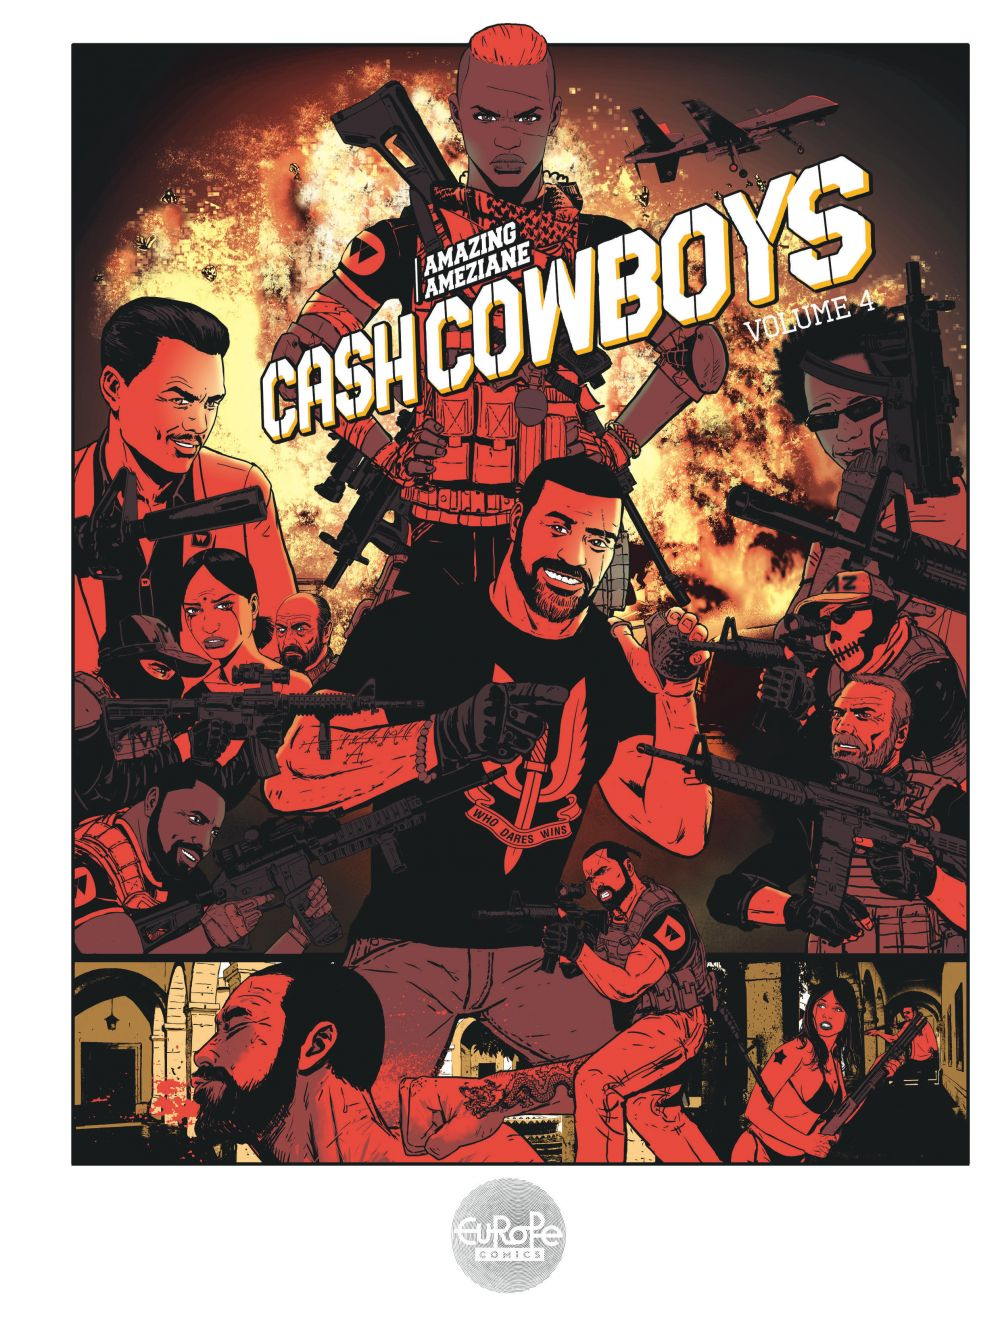 Cash Cowboys - Volume 4